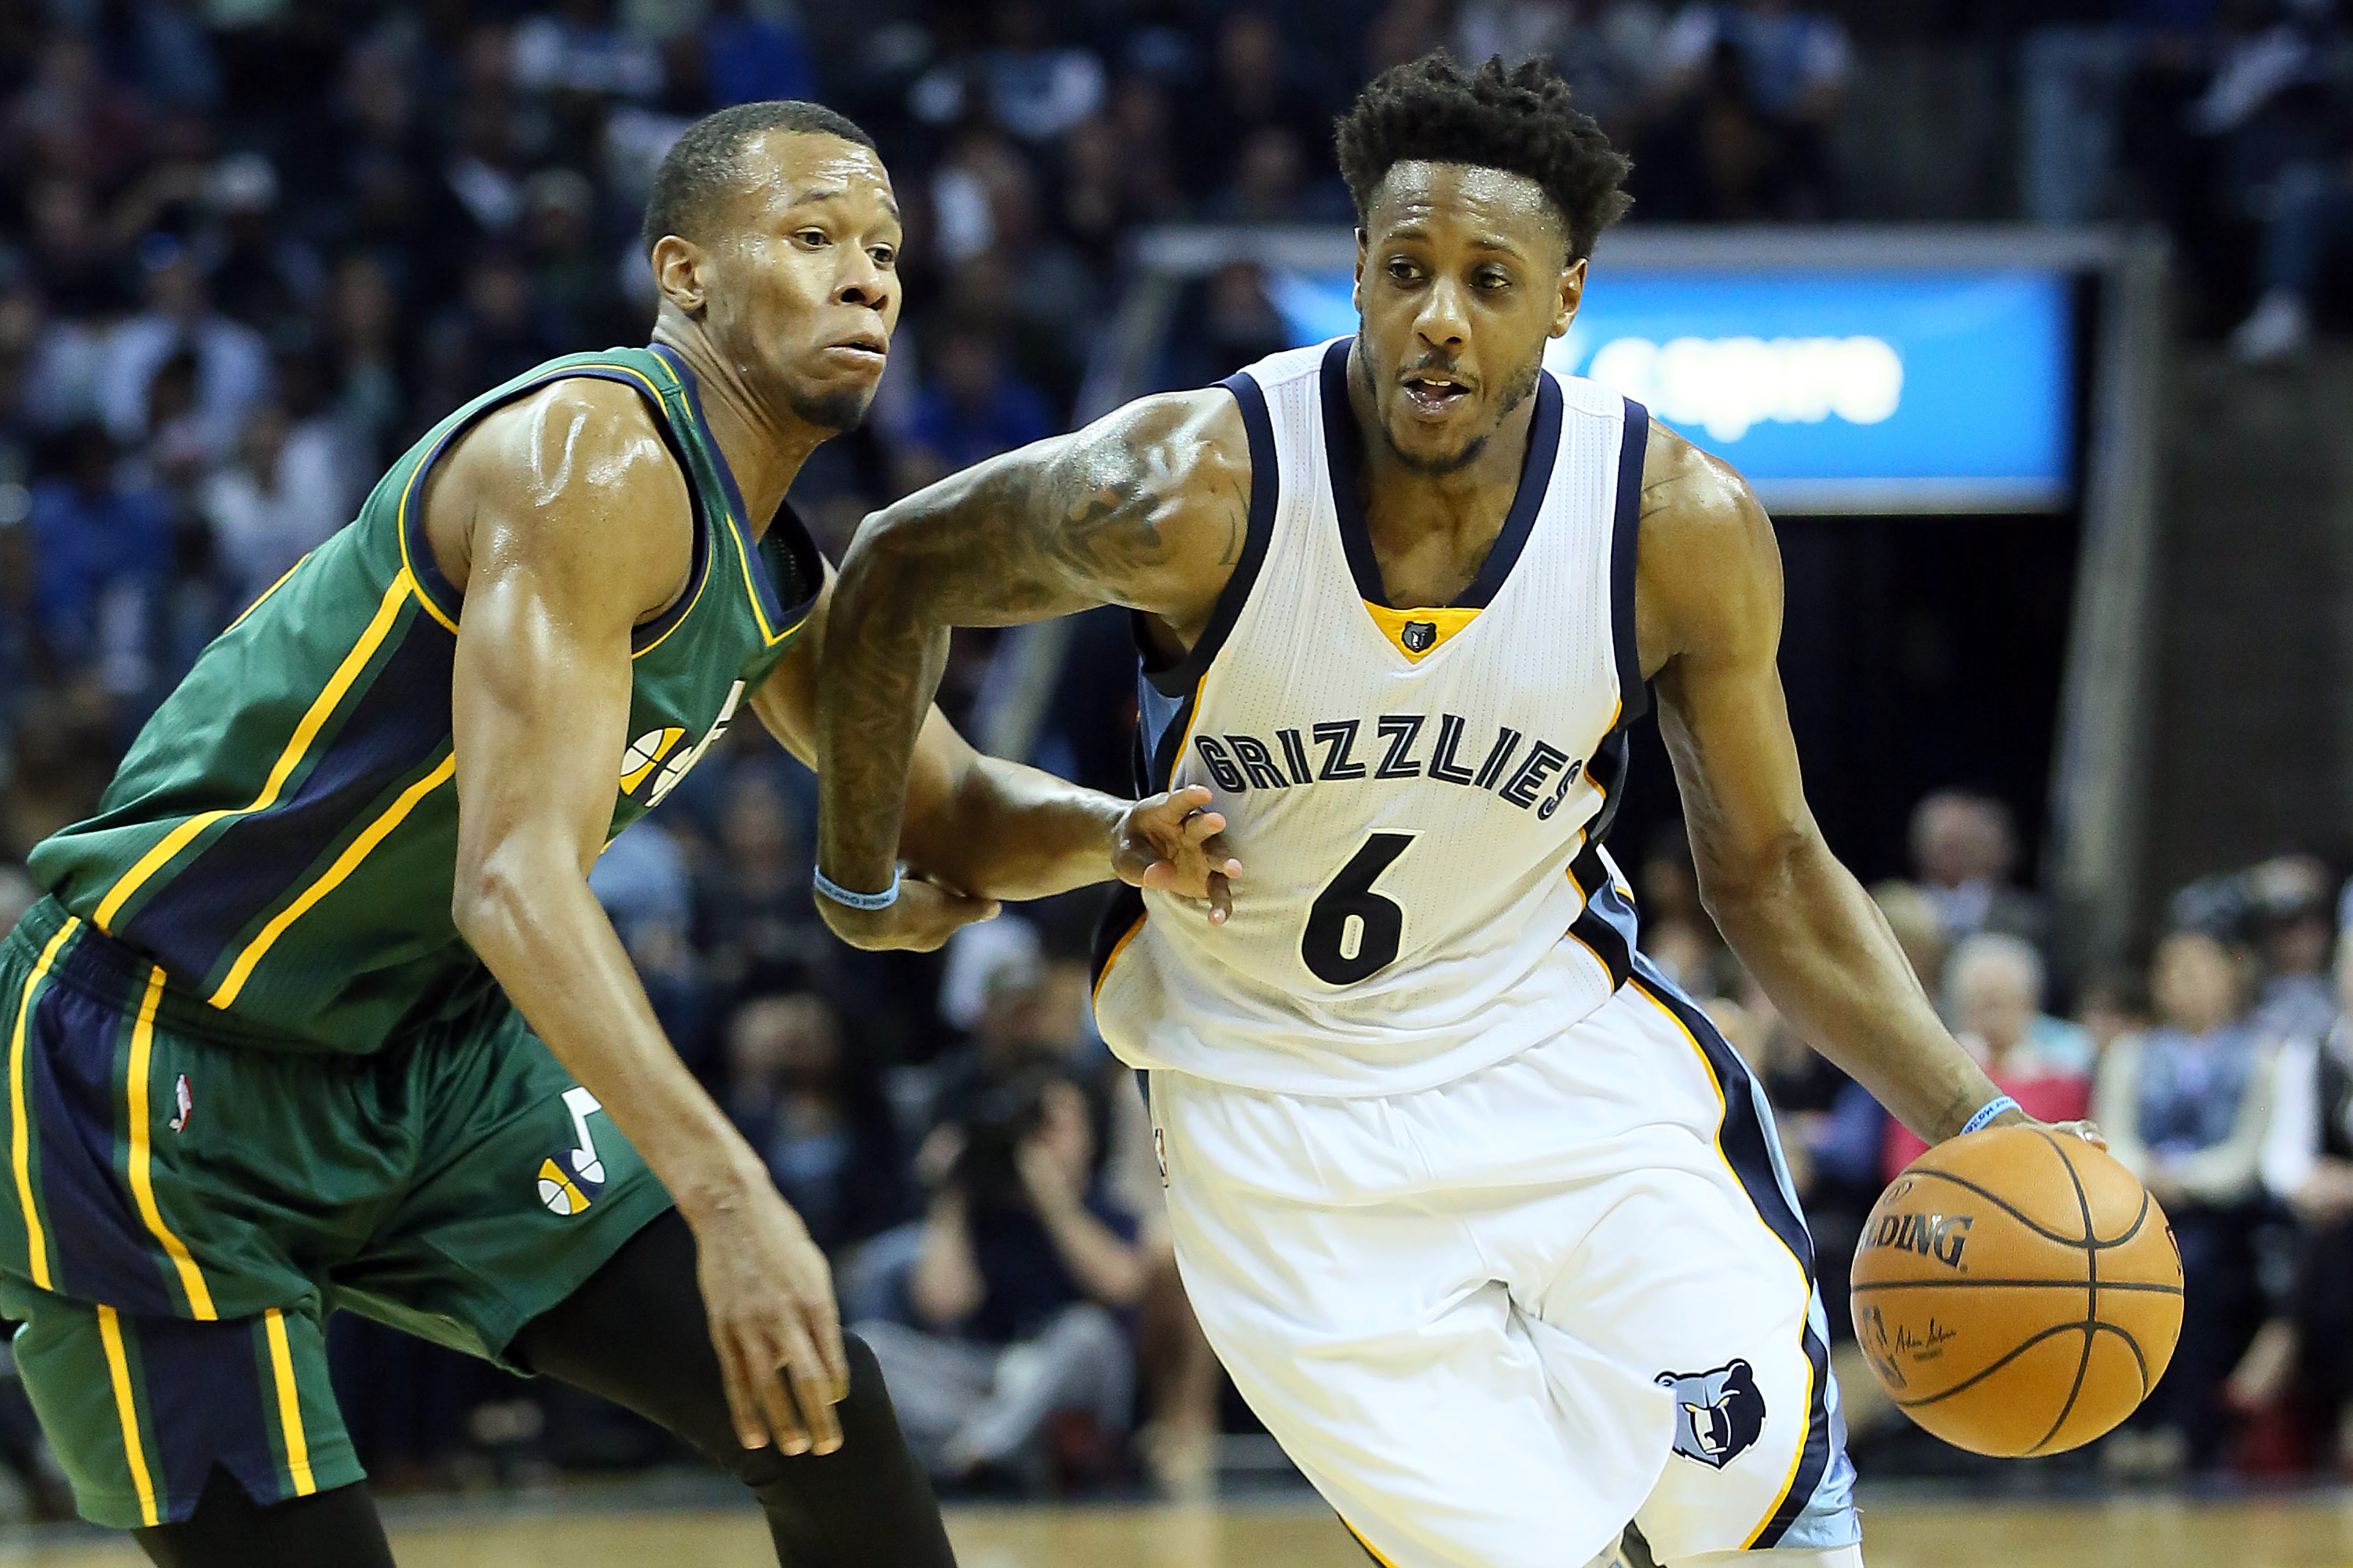 Pelicans fall short to Jazz 127-94